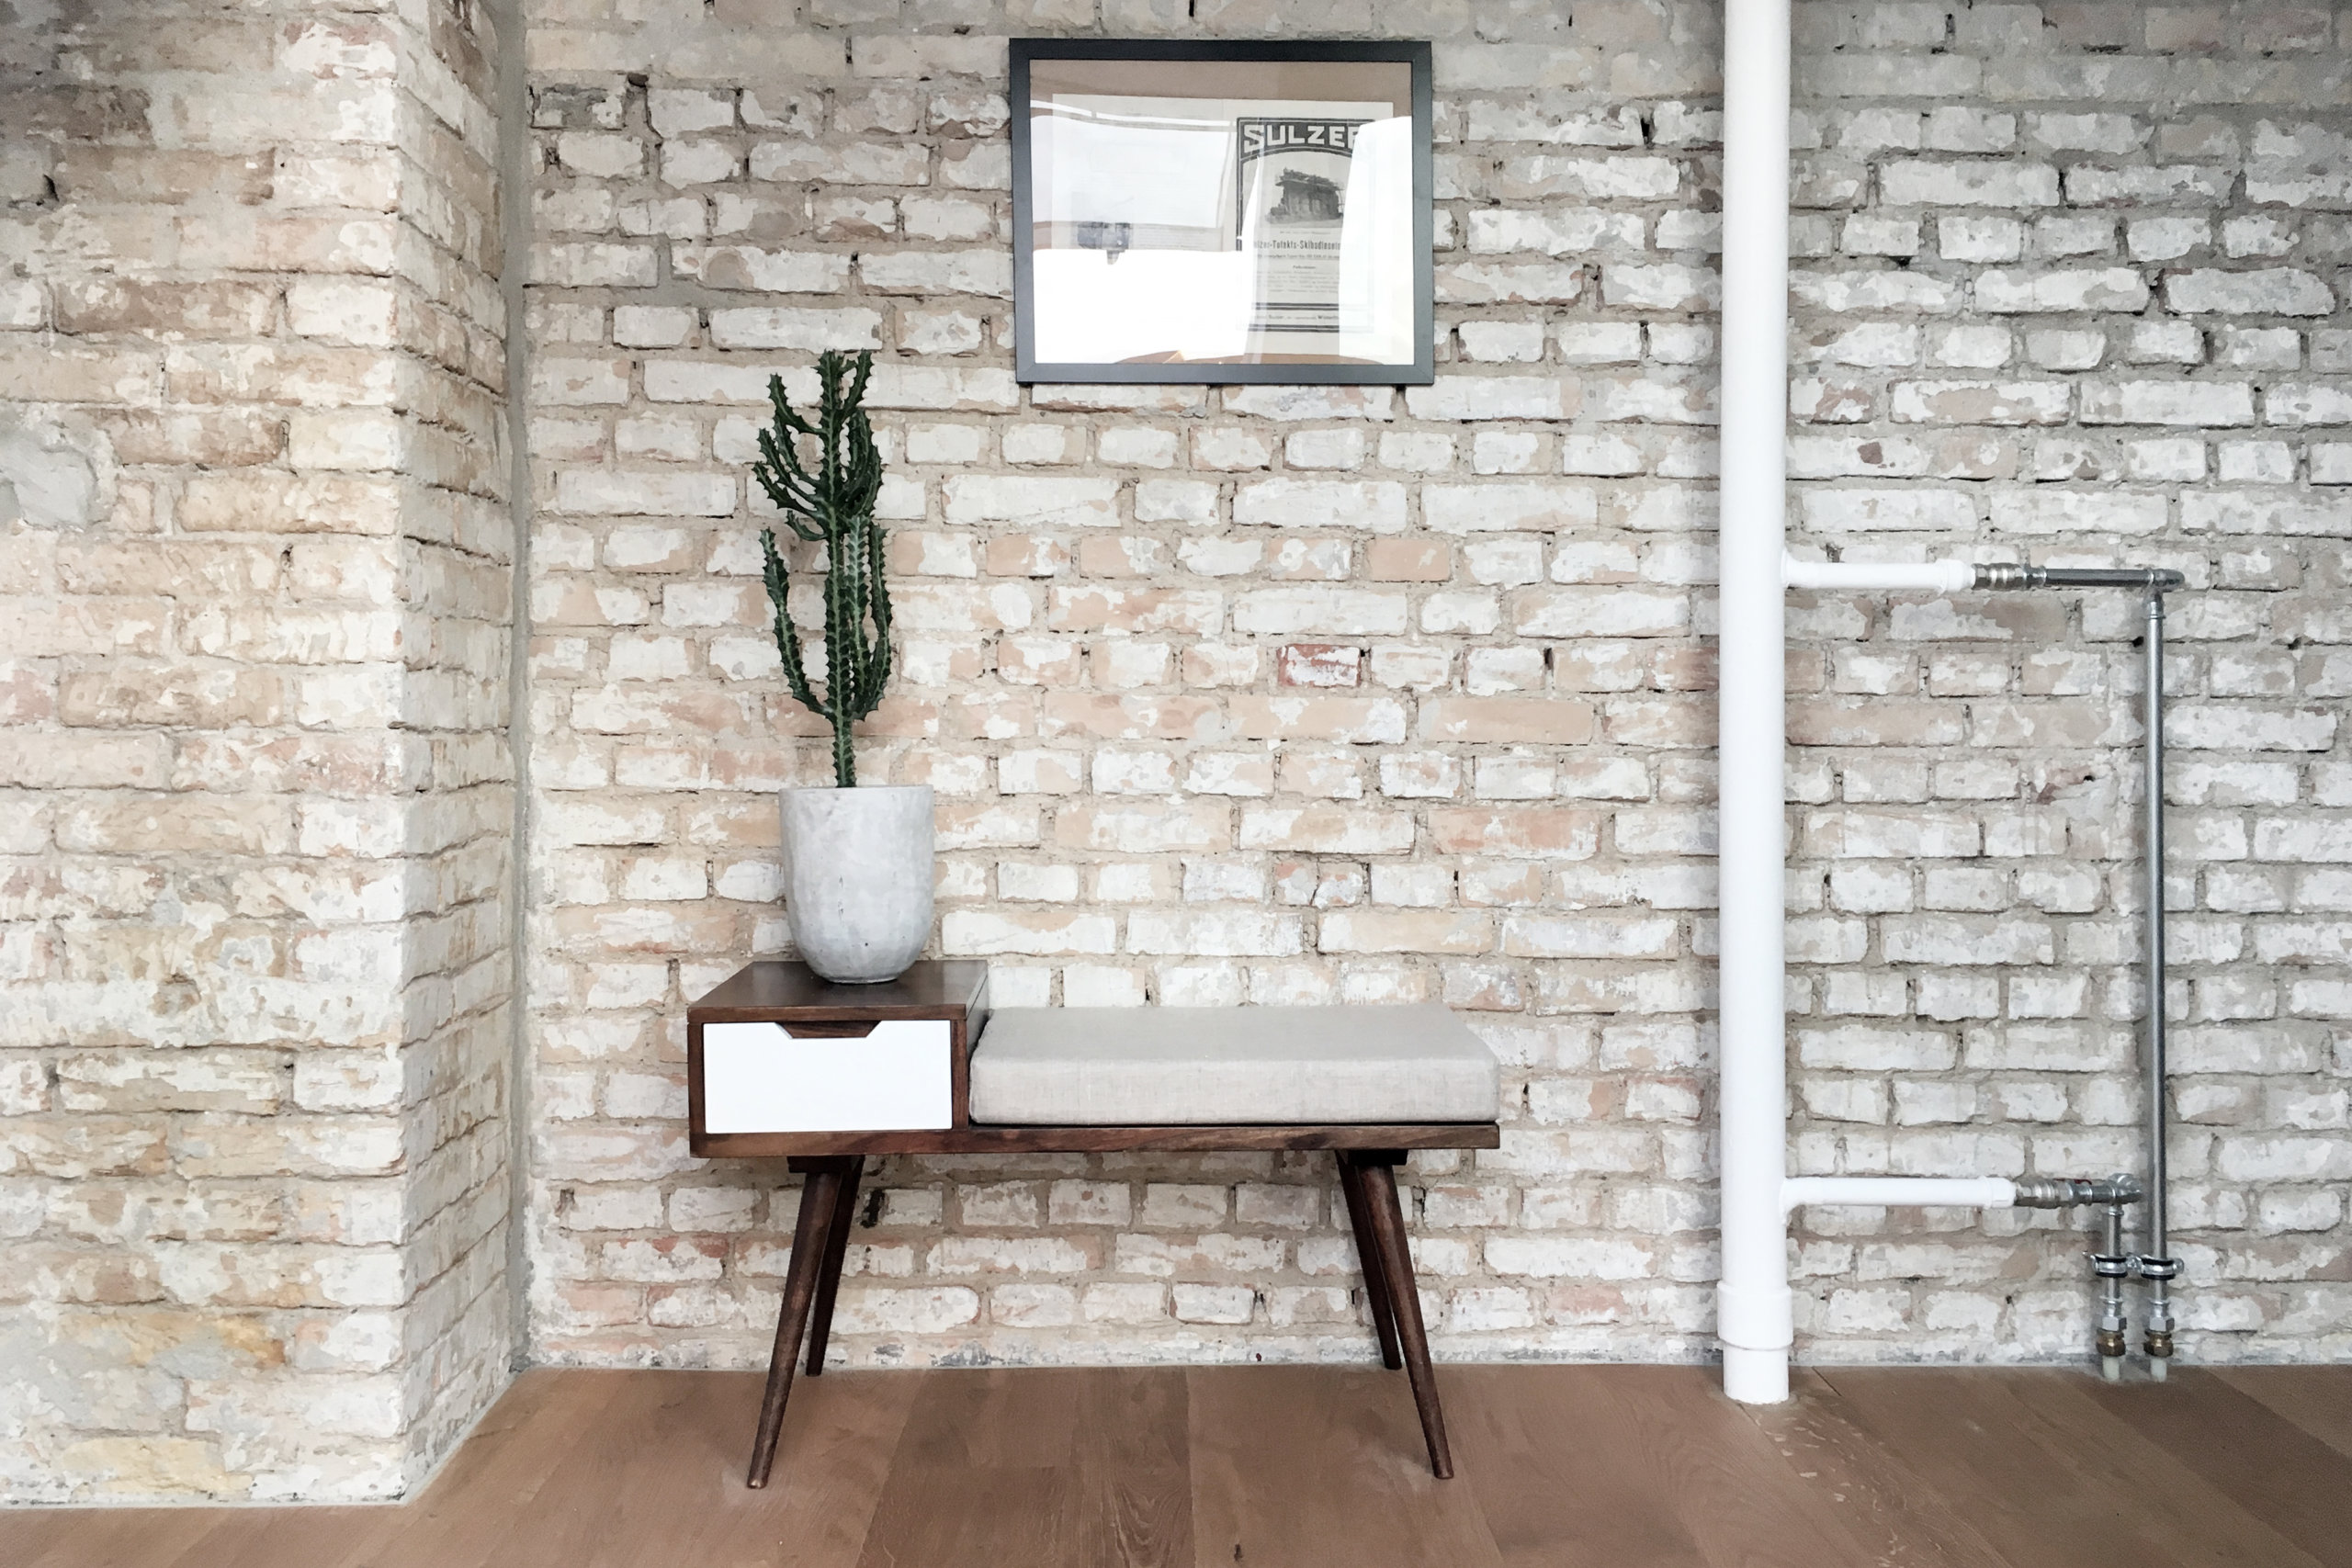 Brick-wall-backdrop-in-the-apartment-is-preserved-and-enhanced-to-add-texture-to-the-interior-41524-scaled